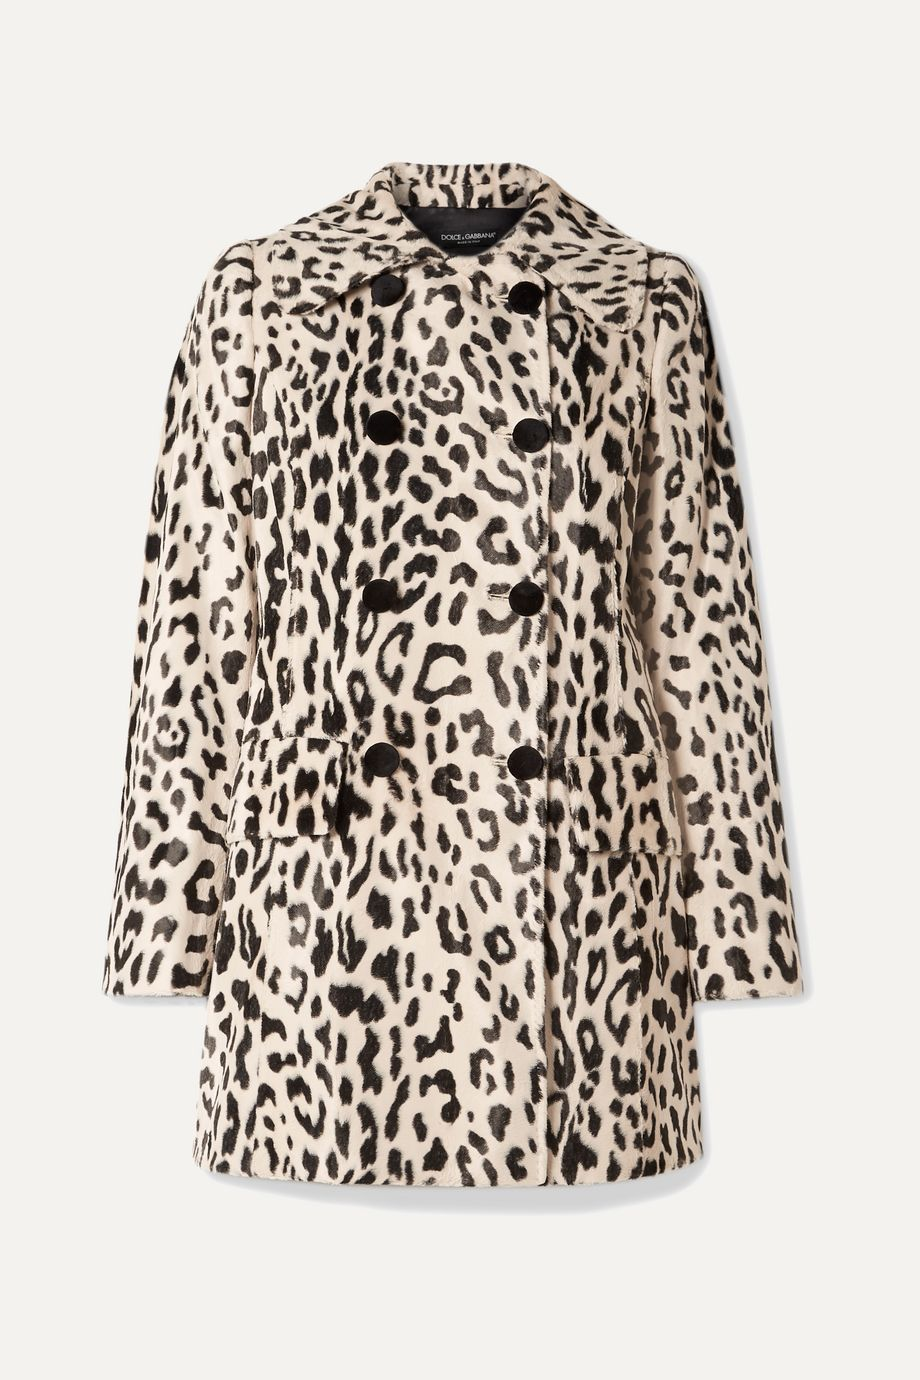 Dolce & Gabbana Double-breasted leopard-print faux fur coat